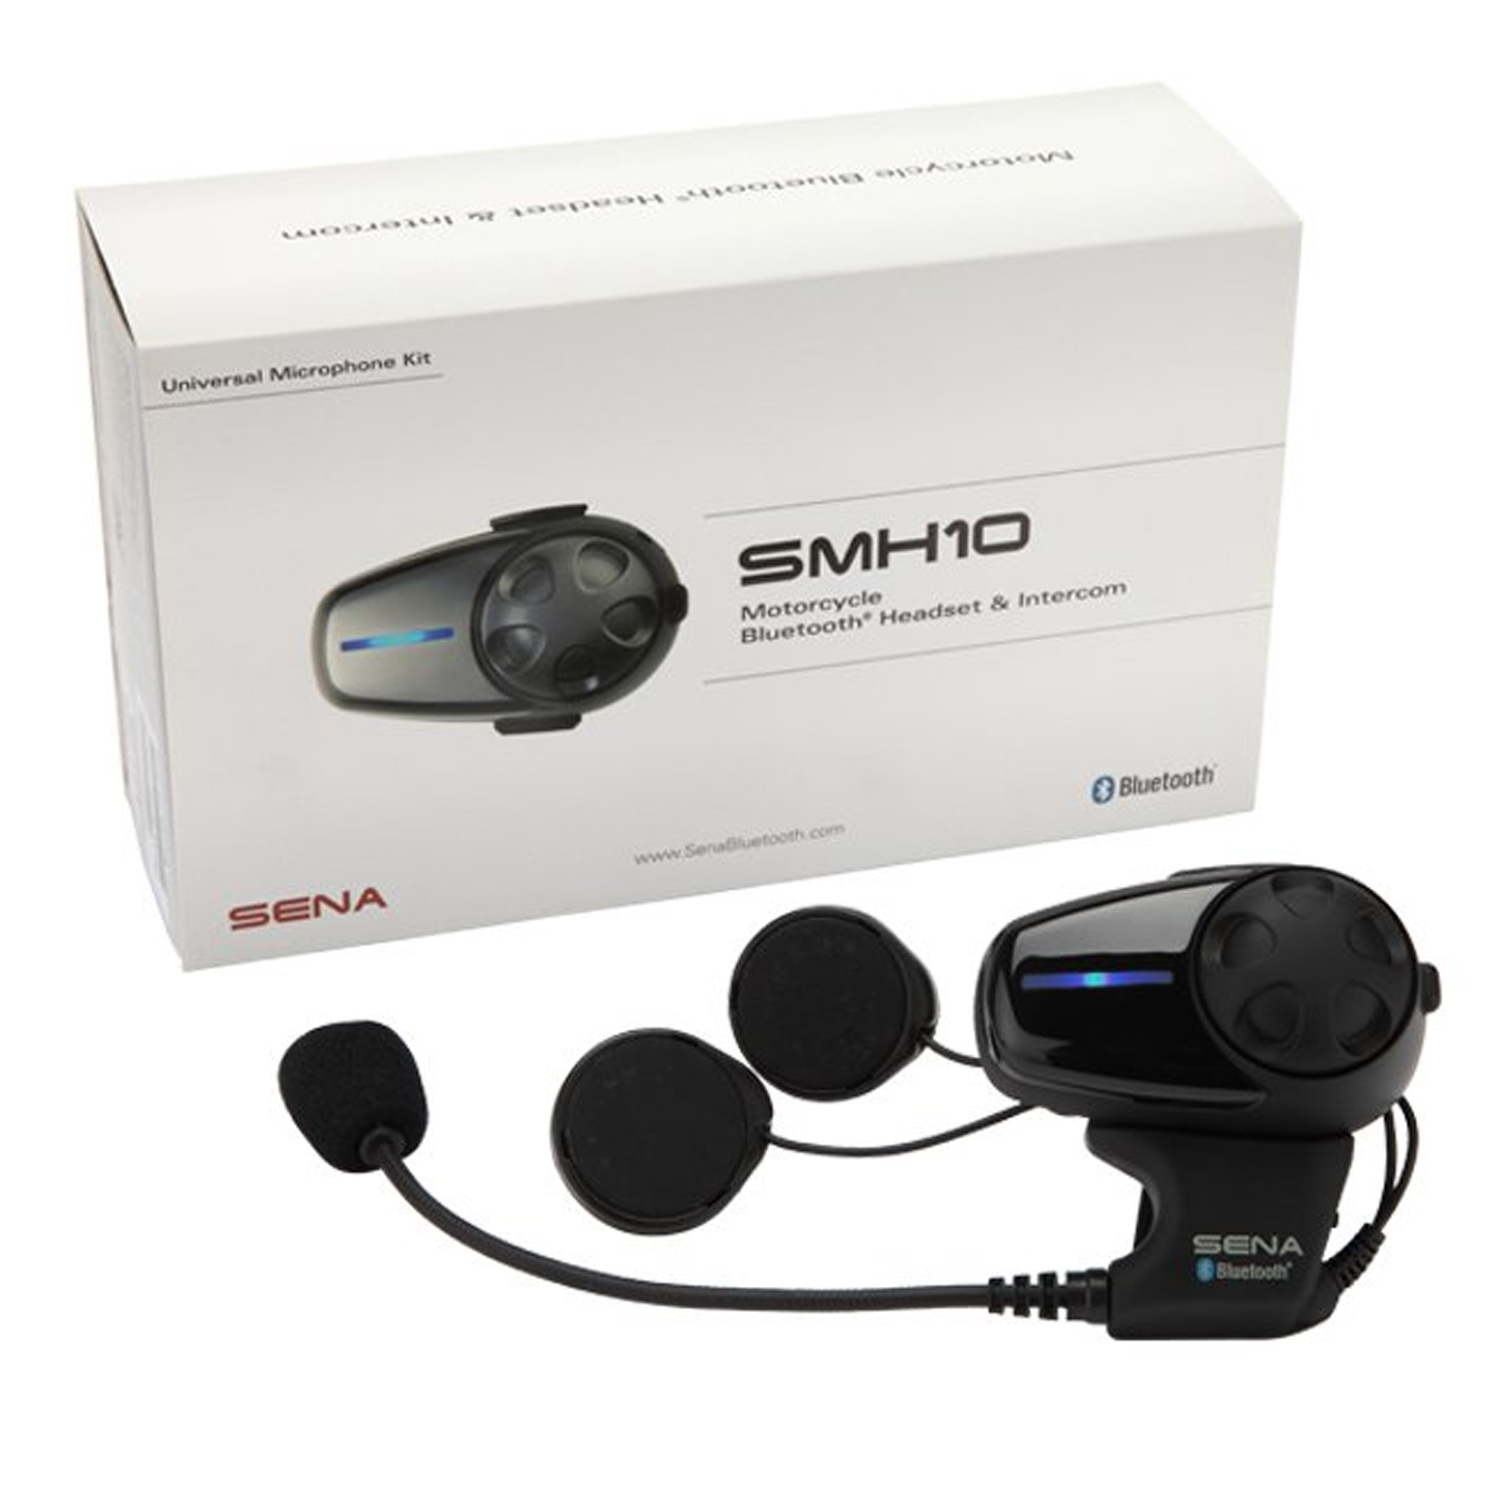 Bluetooth headphones with mic - Sena SMH10 - headset - with Universal Microphone Kit Overview